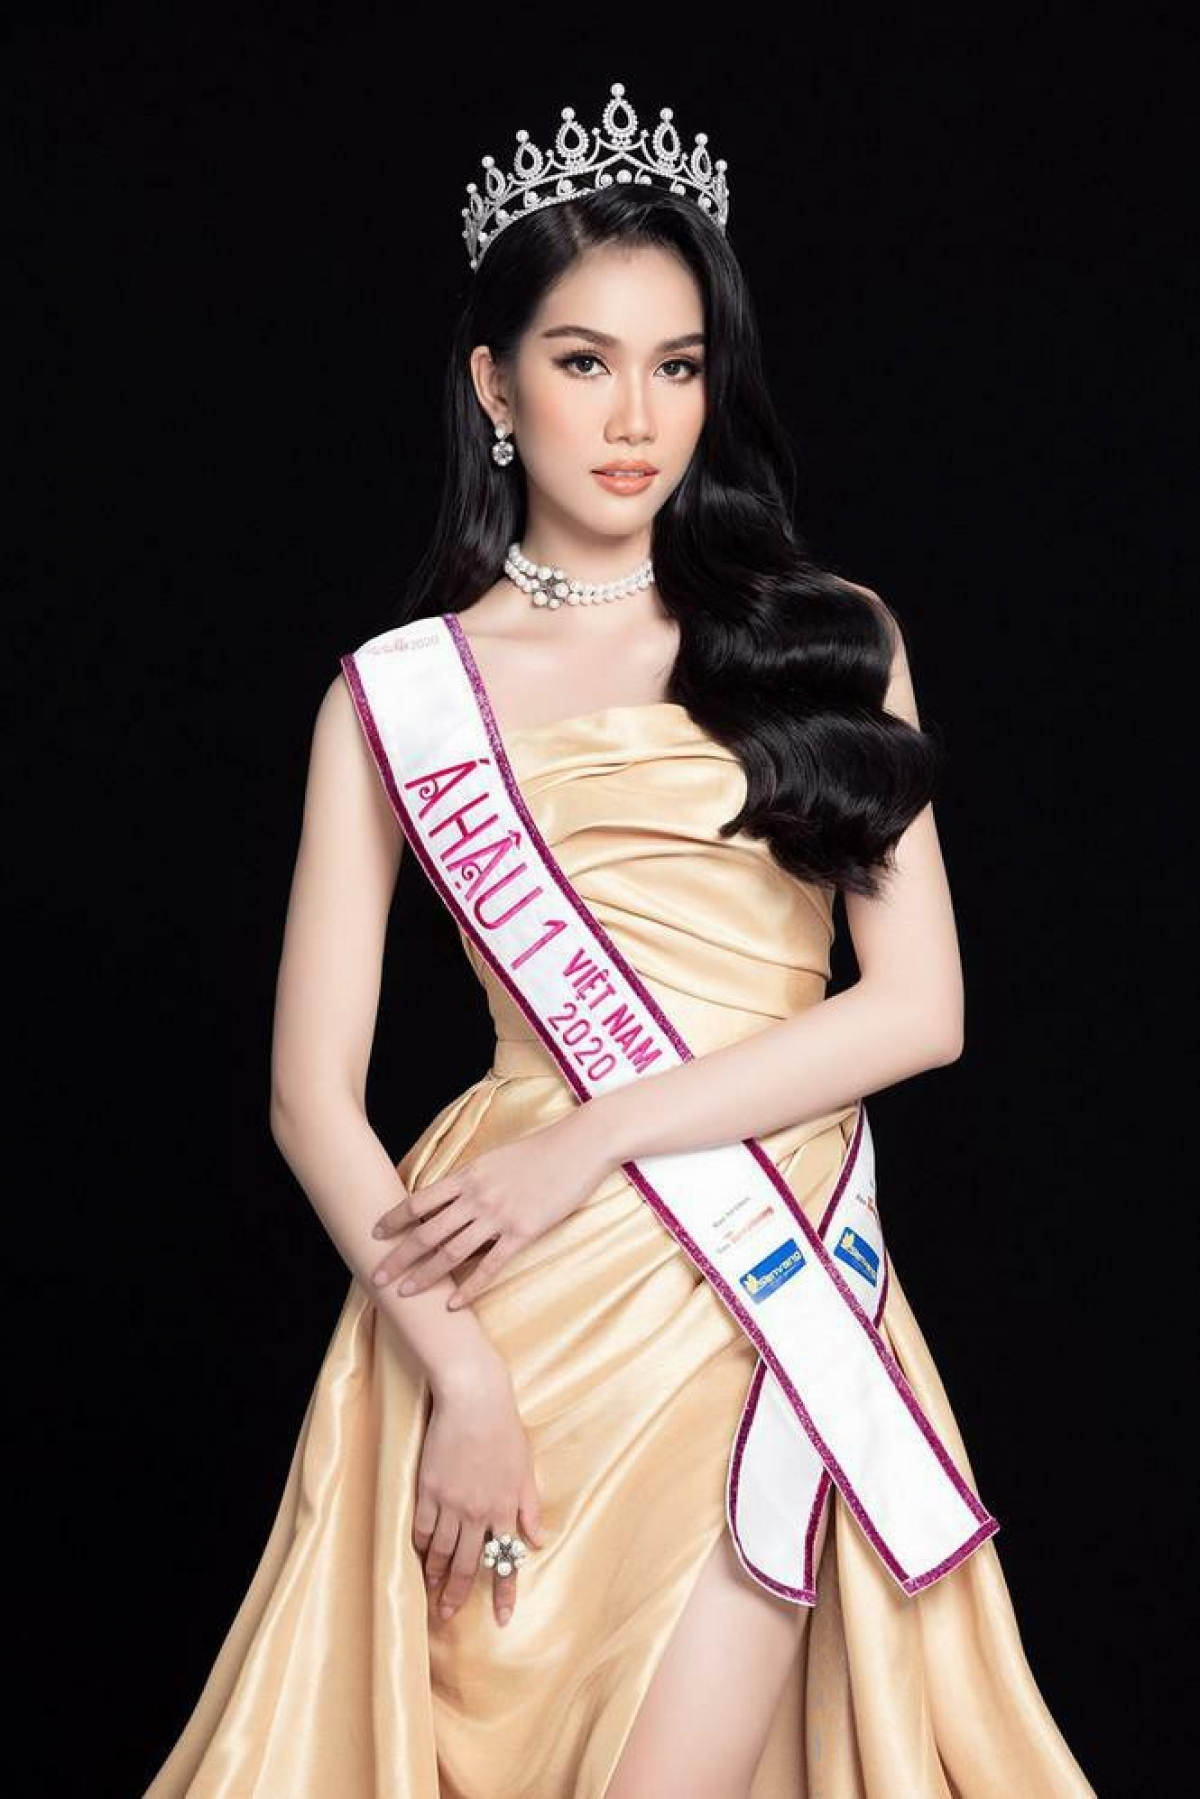 First runner-up at Miss Vietnam 2020Phuong Anh ranksseventh in Crown Talk's list